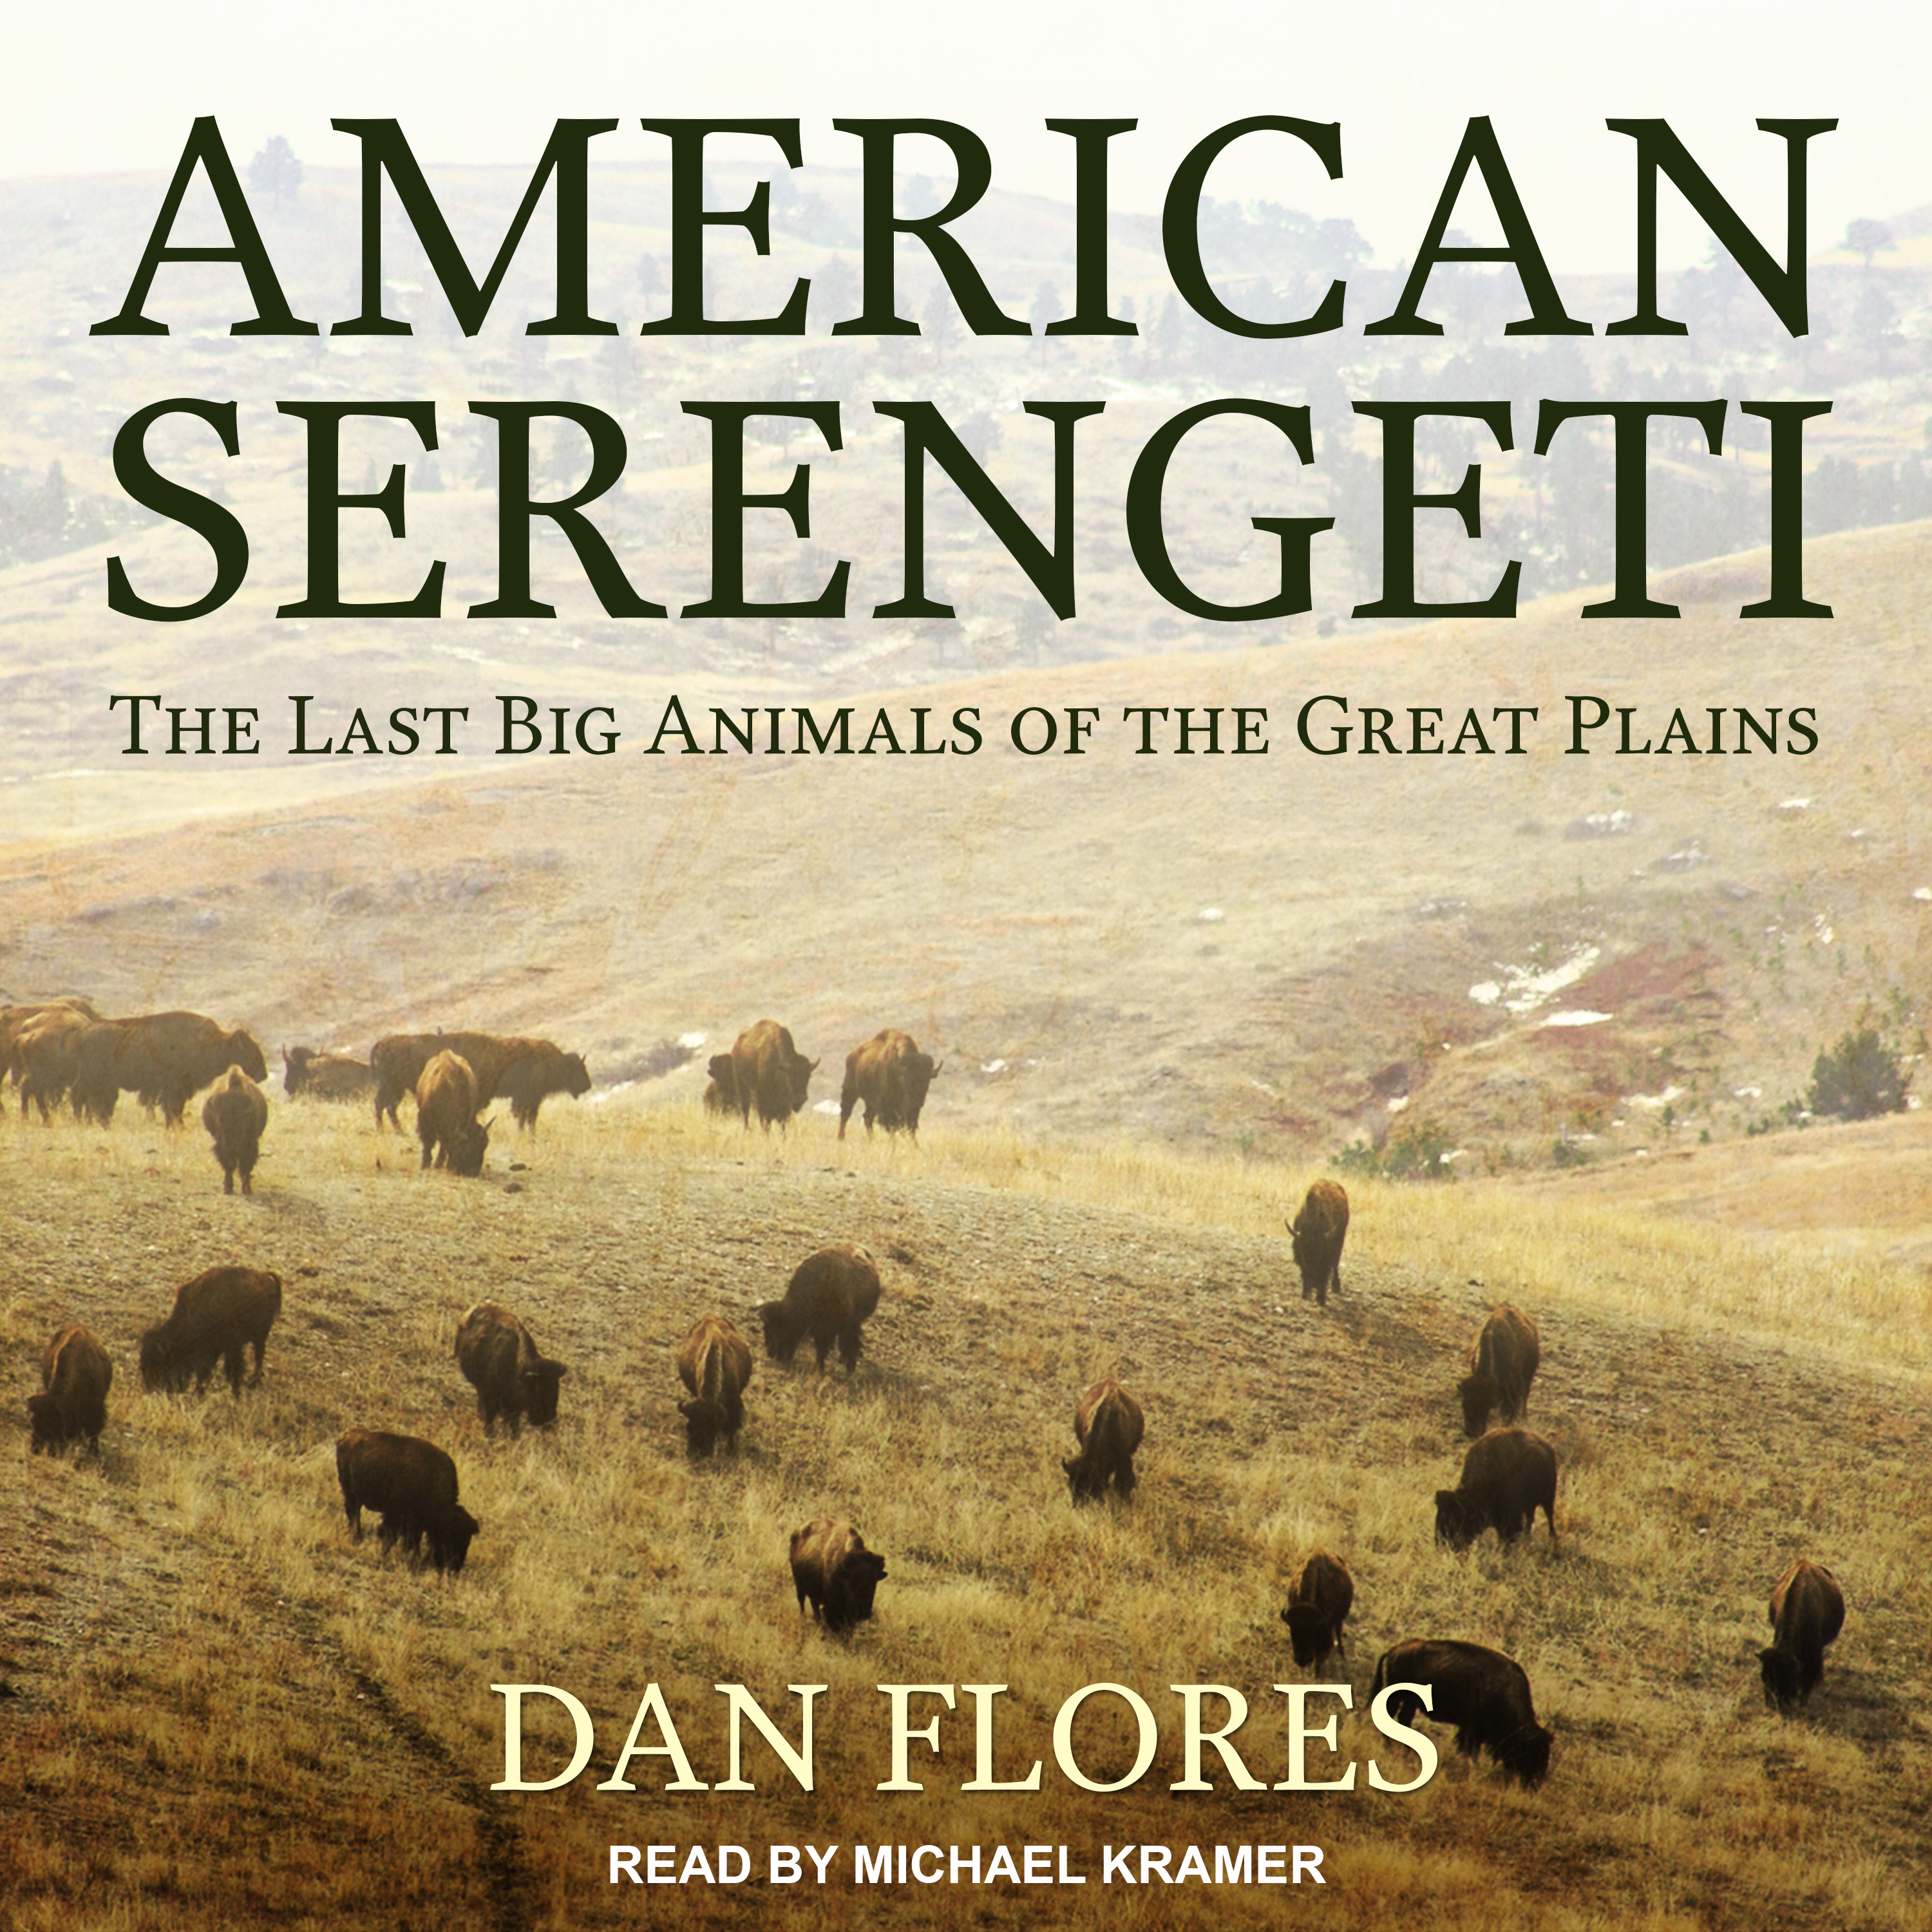 Printable American Serengeti: The Last Big Animals of the Great Plains Audiobook Cover Art